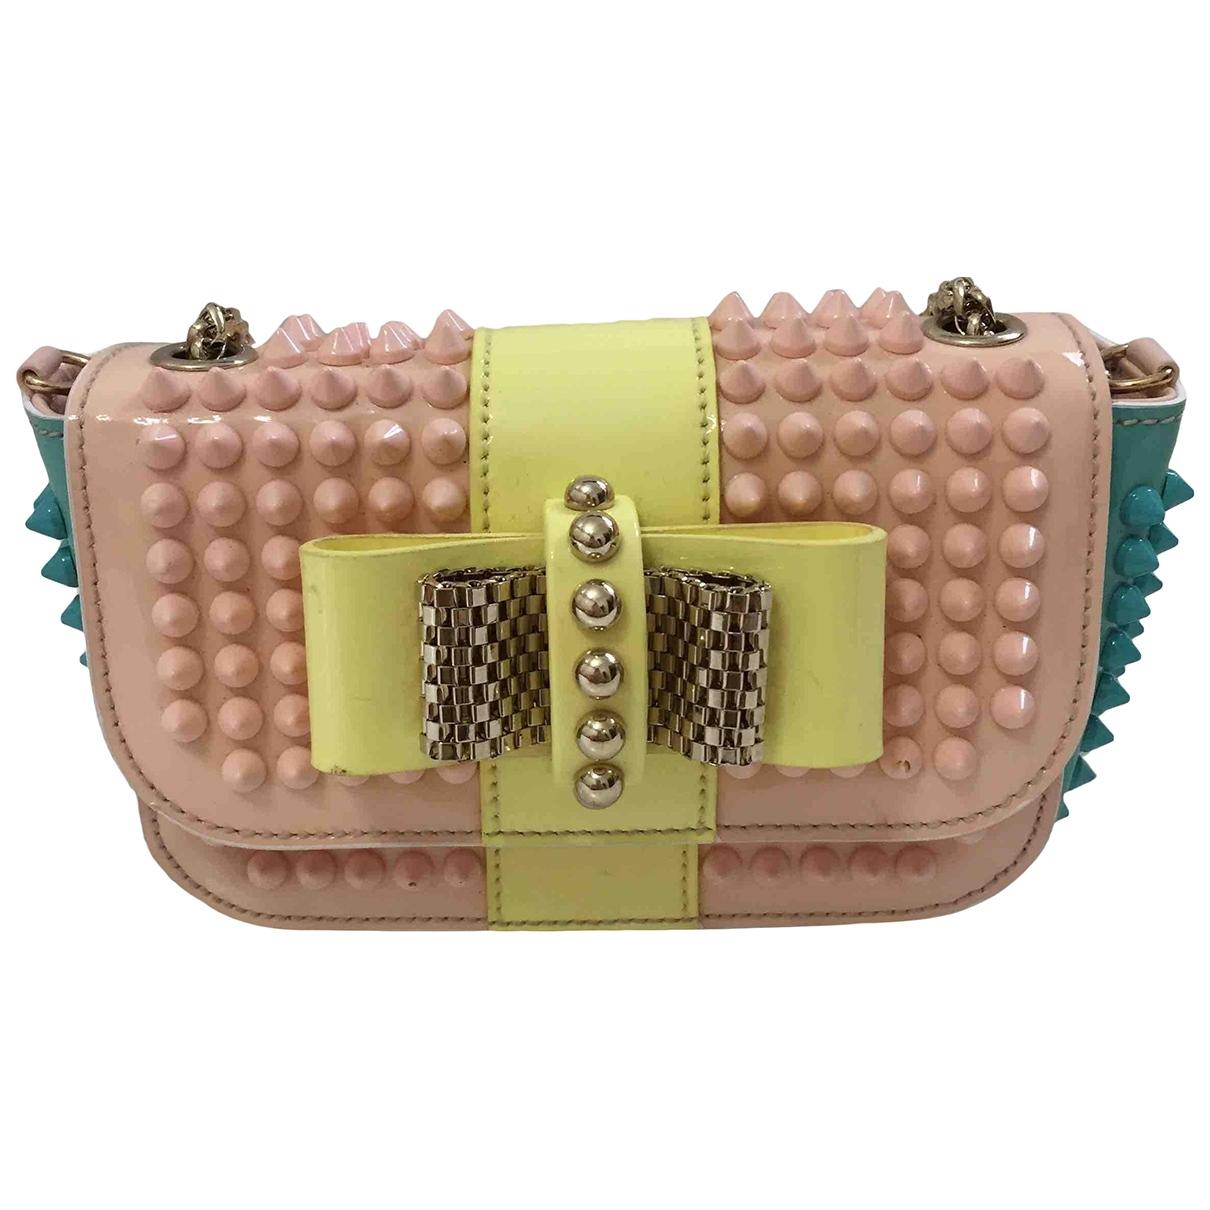 Christian Louboutin Sweet Charity Clutch in  Bunt Leder